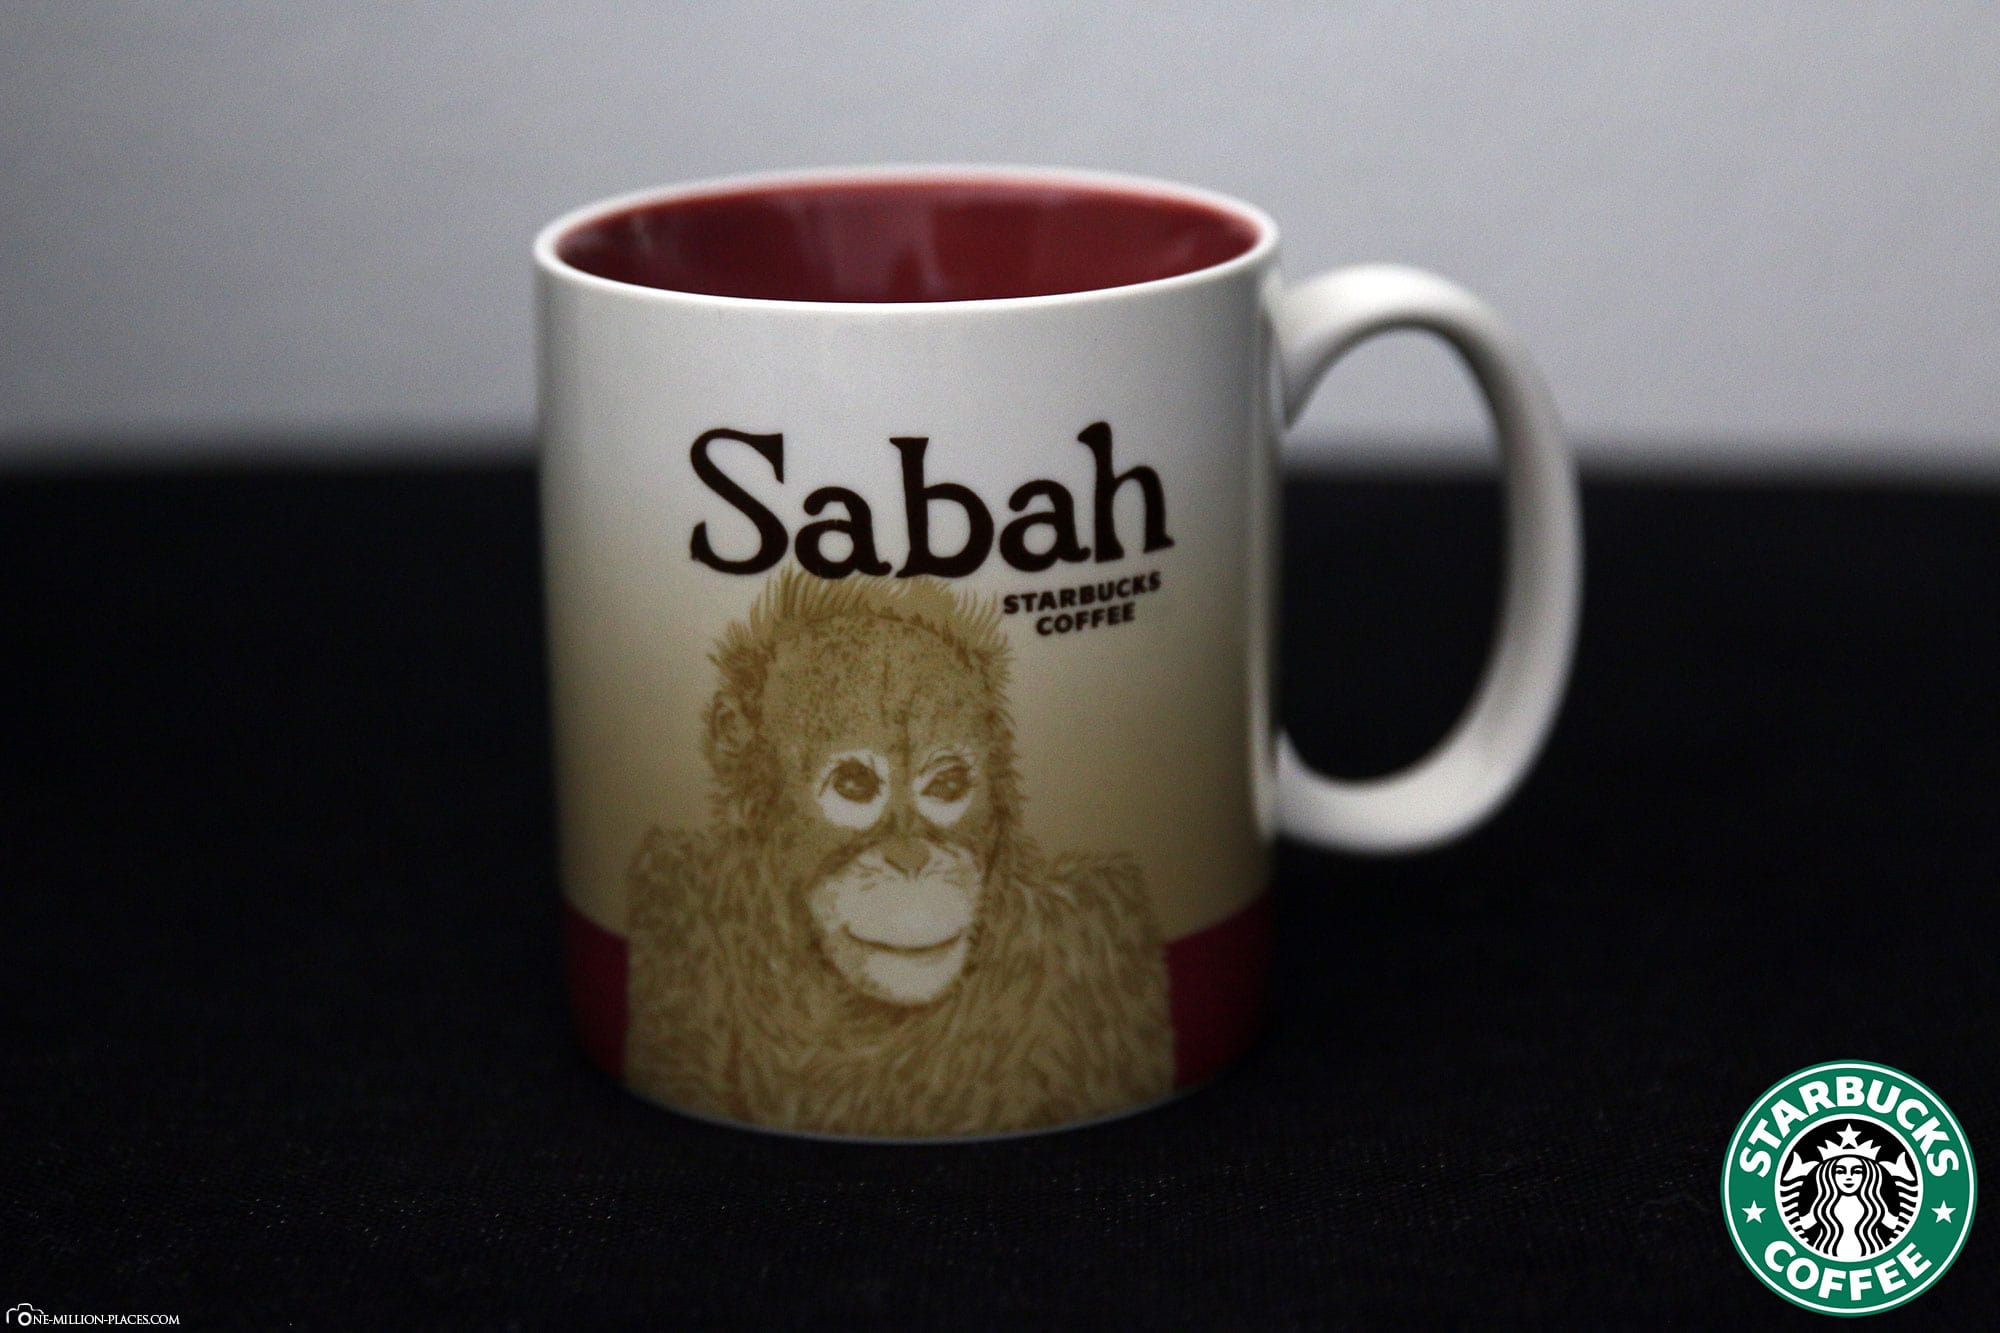 Sabah, Starbucks Cup, Global Icon Series, City Mugs, Collection, Malasia, Travelreport